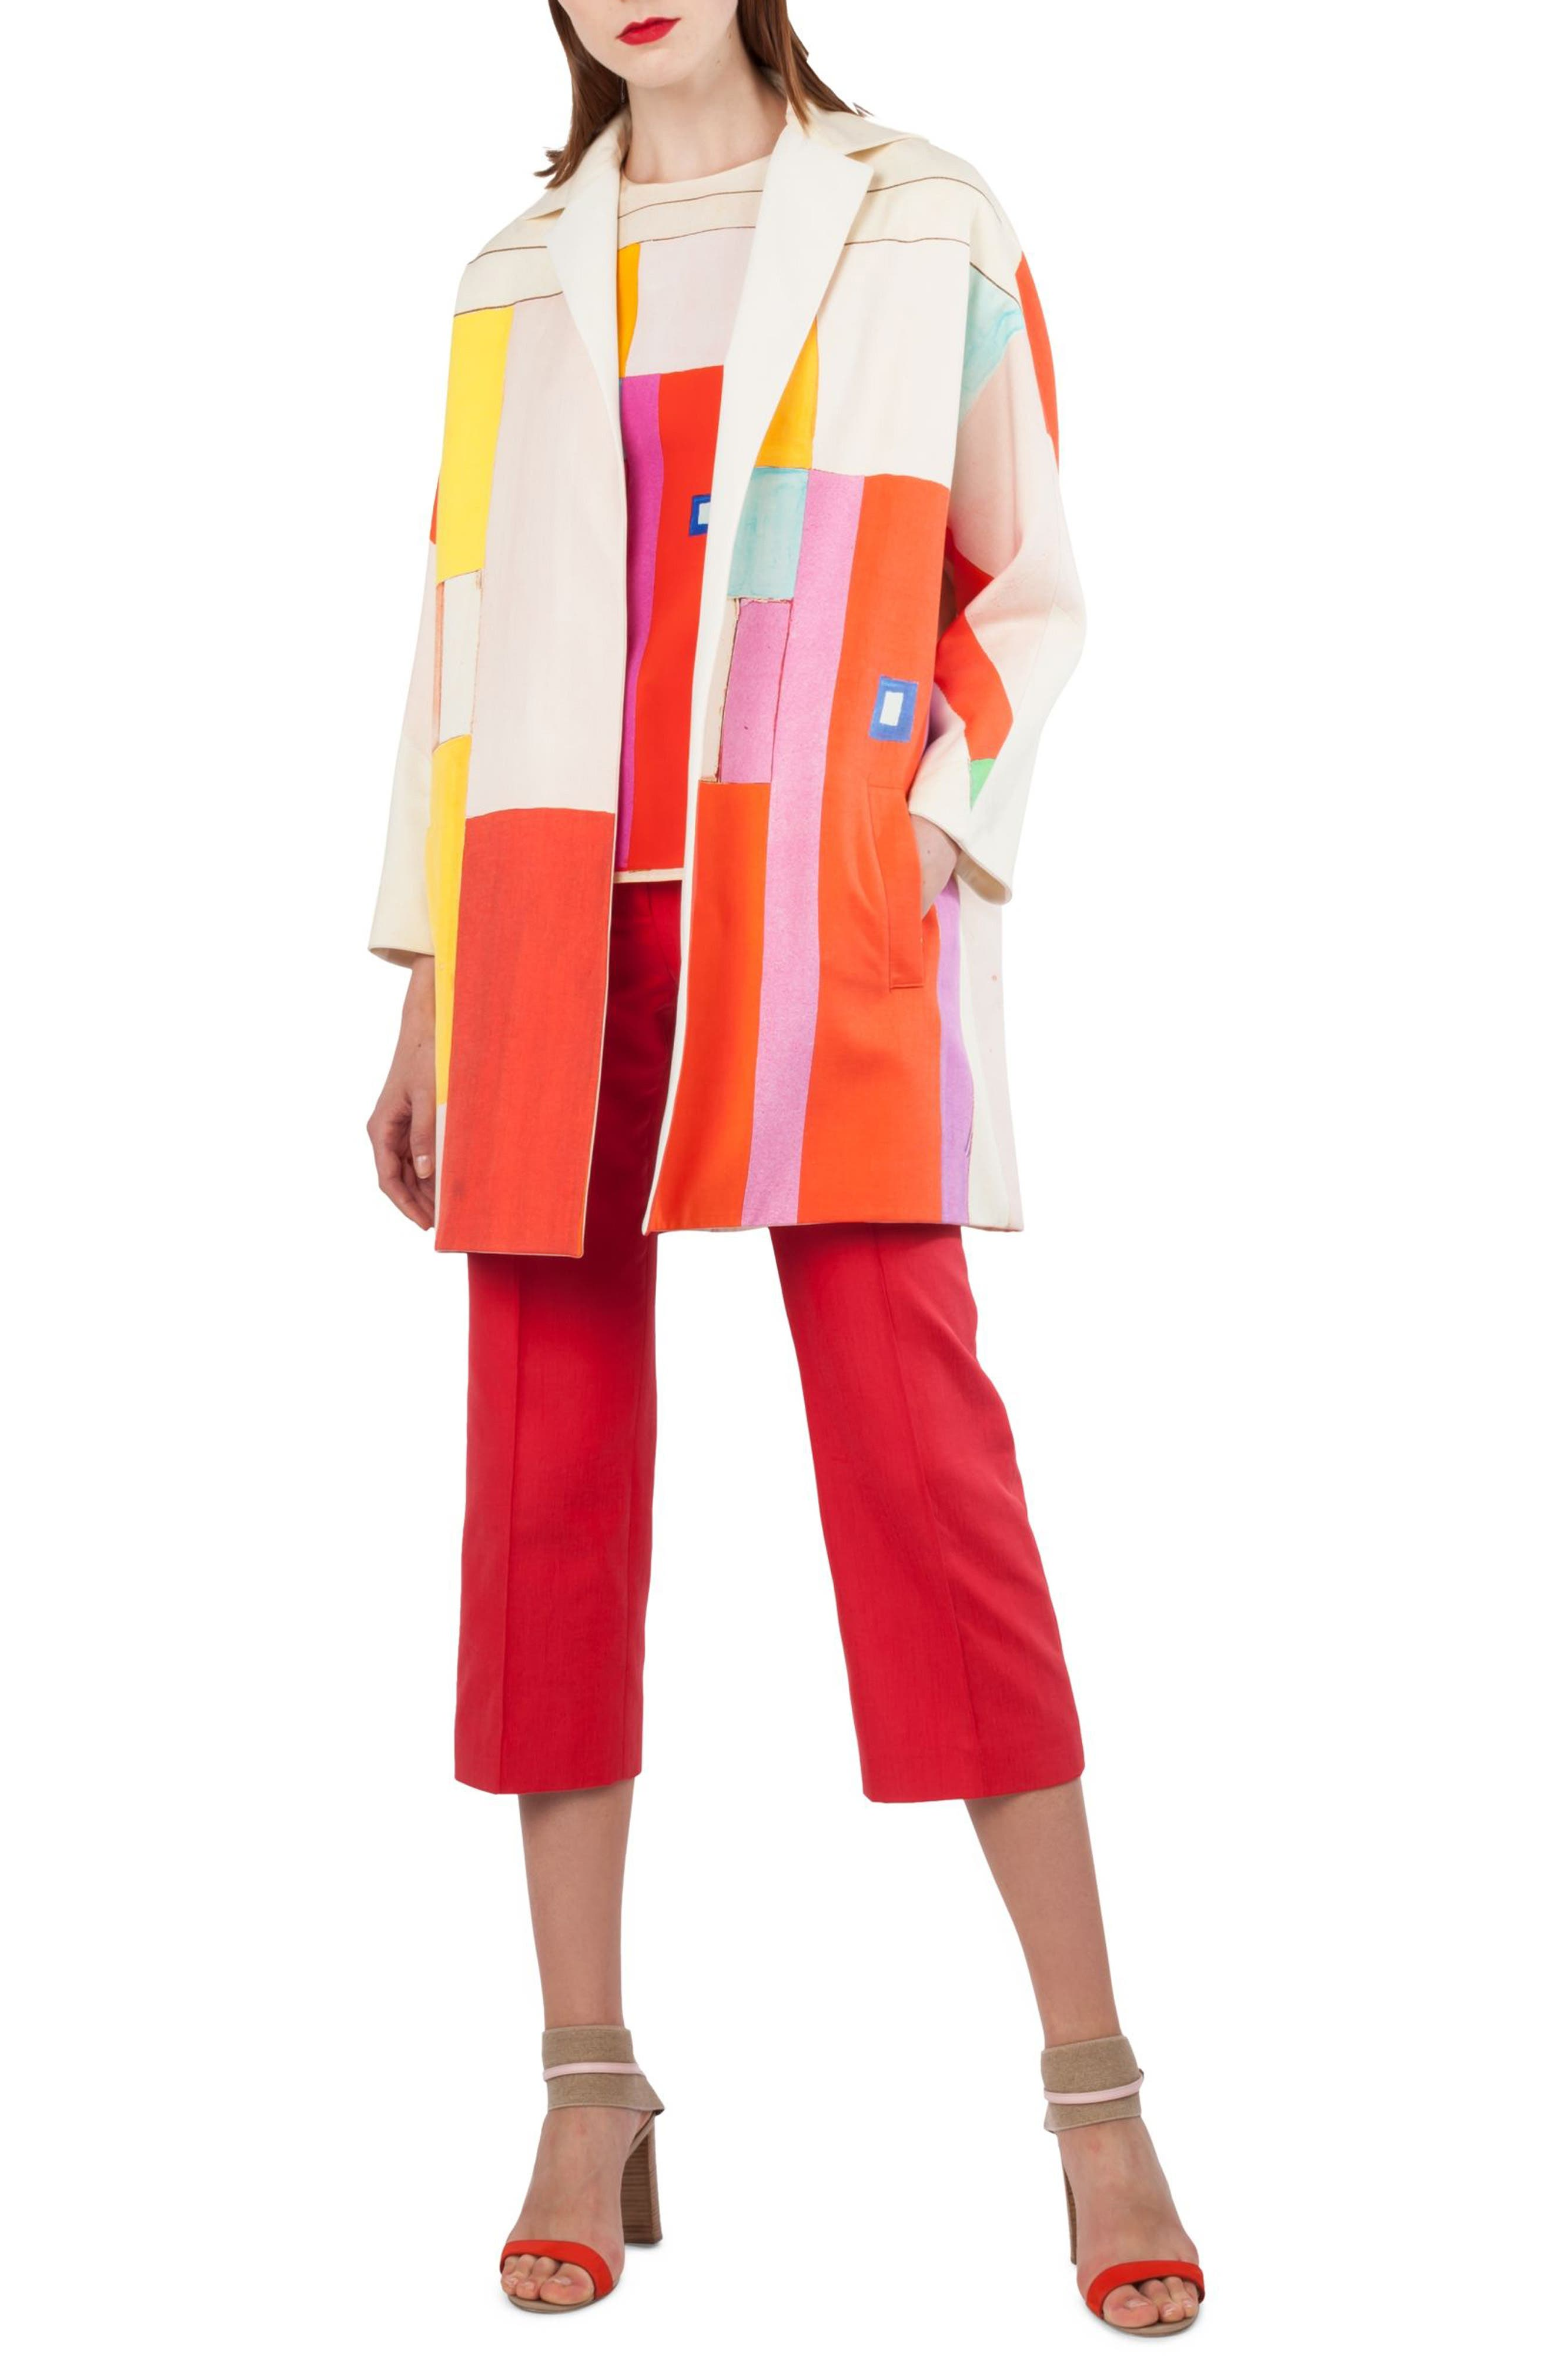 Mural Print Cotton & Silk Reversible Coat,                             Alternate thumbnail 6, color,                             Multicolor